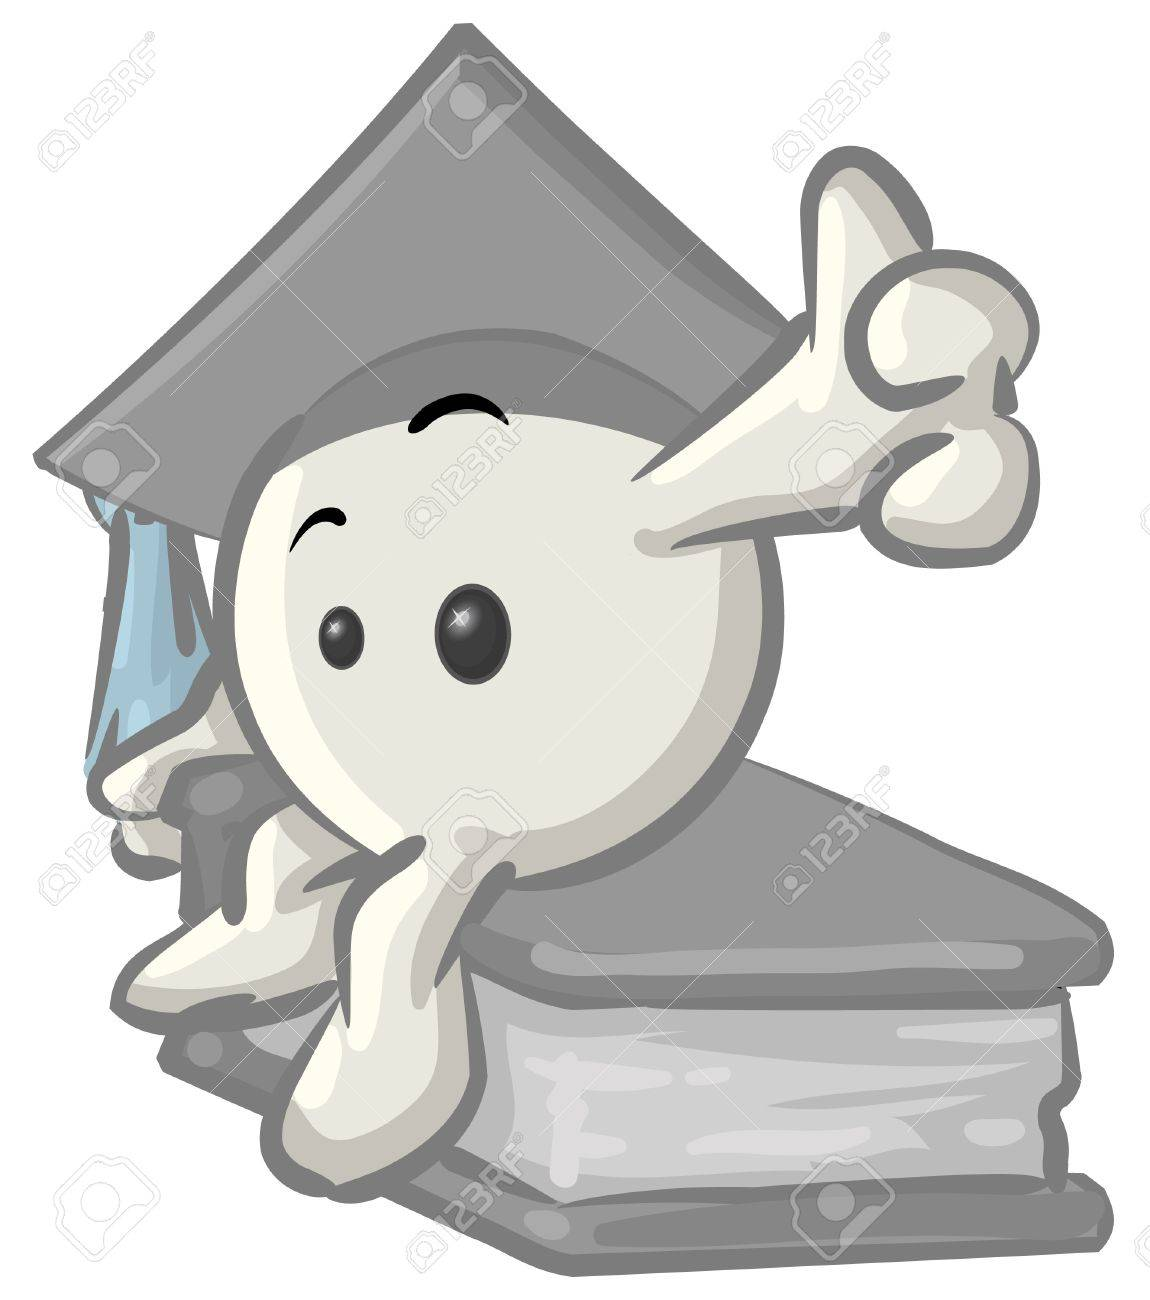 Royalty-free clipart picture of a white konkee character graduate in a cap,  sitting on a book, on a white background